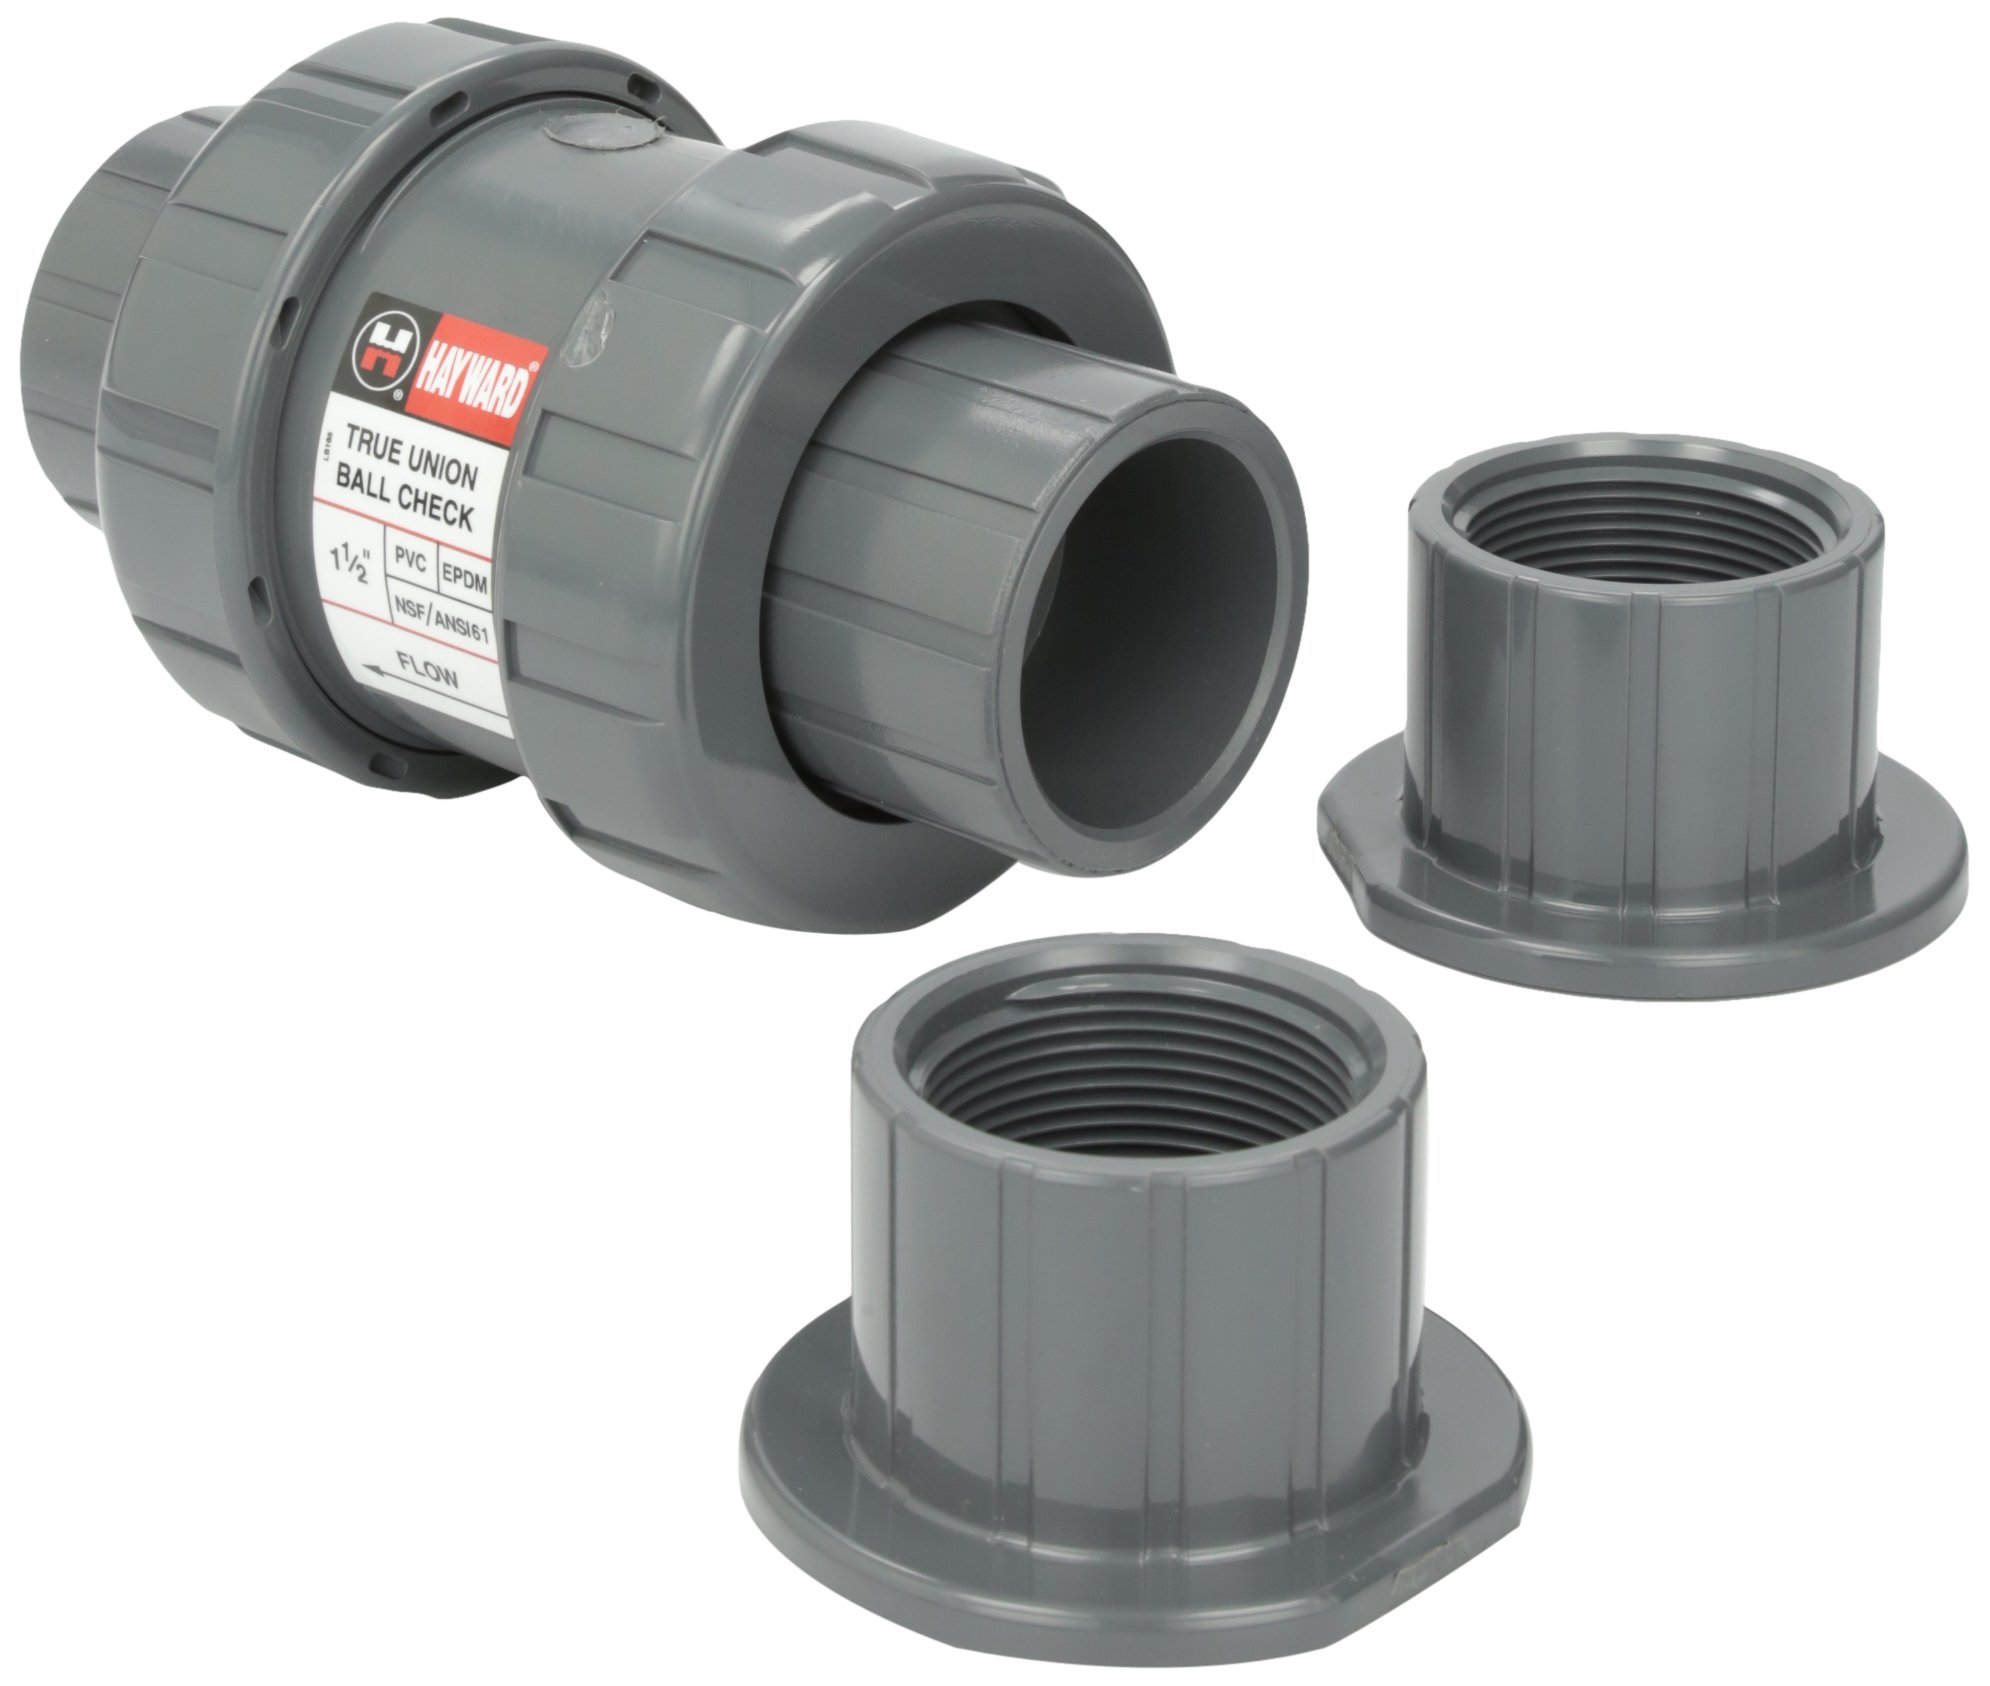 Hayward TC10150STE 1-1/2-Inch PVC TC Series True Union Check Valve with EPDM Seals and Socket/Threaded End Connection by Hayward